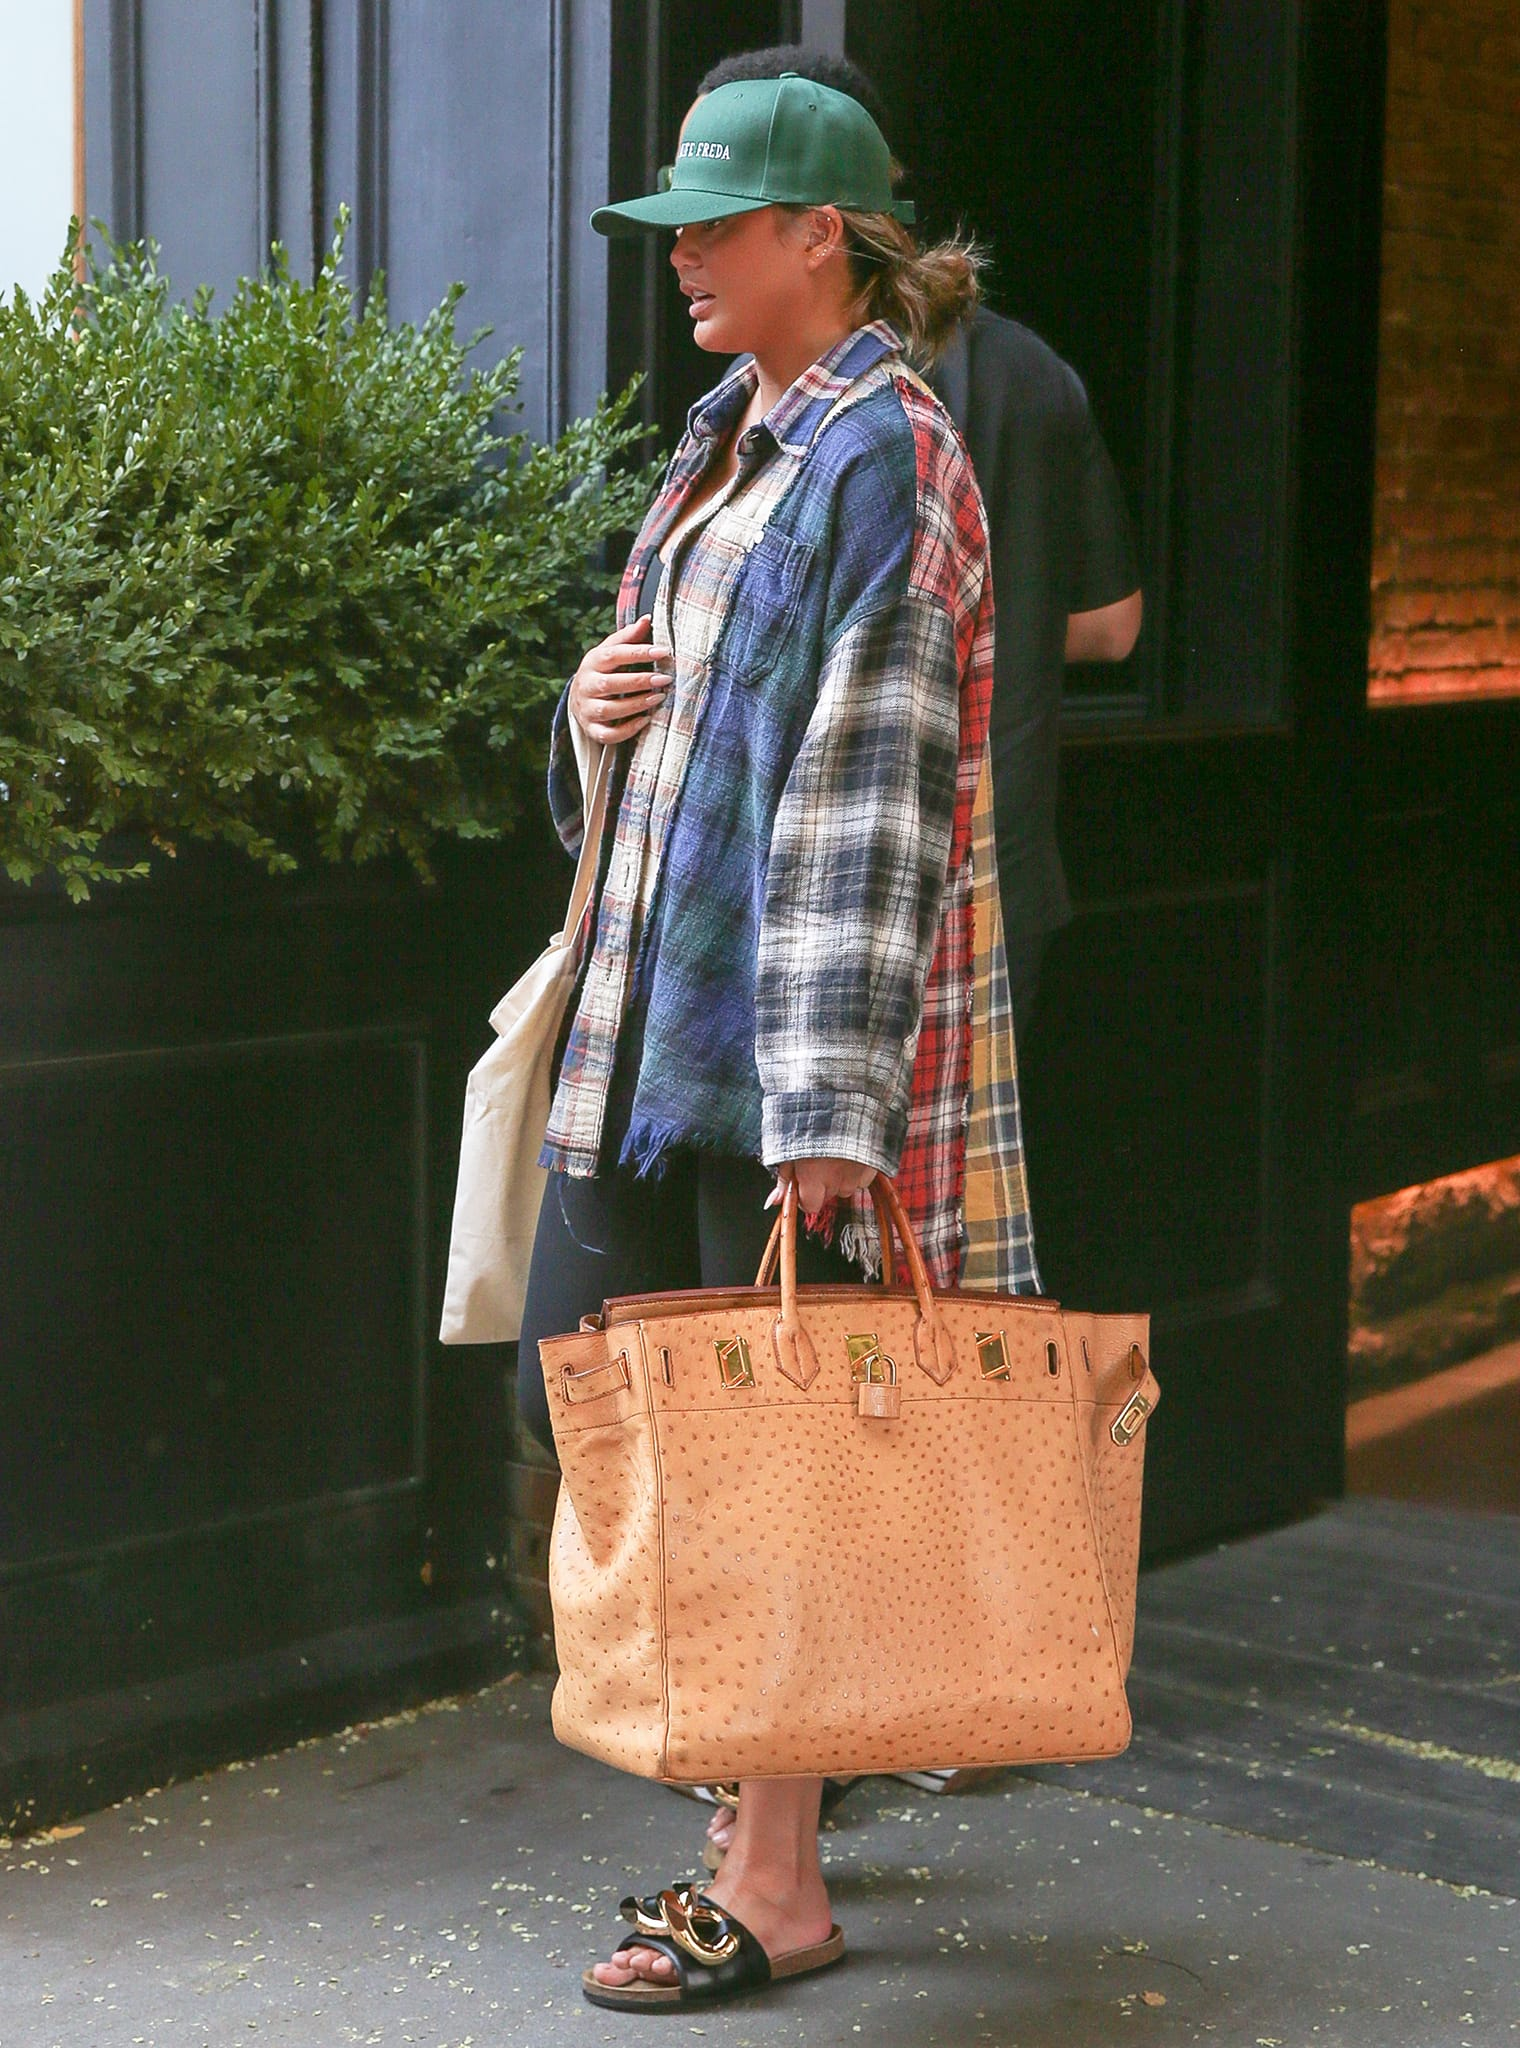 Chrissy Teigen leaving her apartment building in patchwork flannel shirt and leggings in SoHo, NYC on July 30, 2021